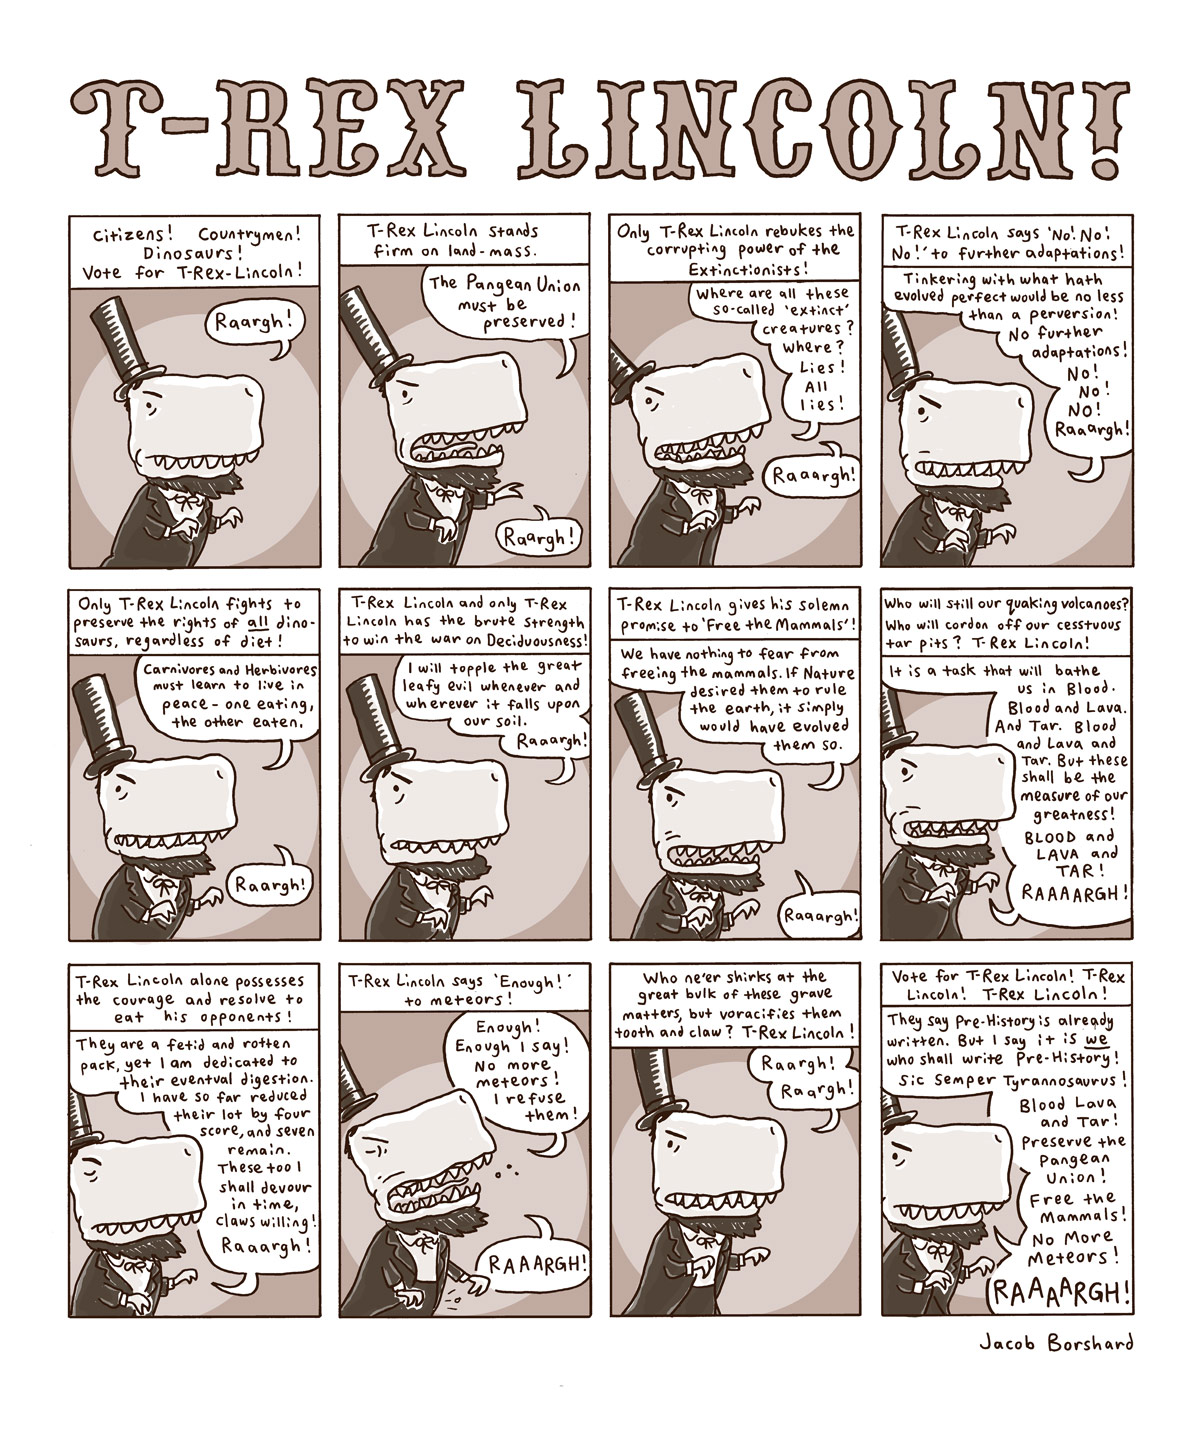 T-Rex Lincoln on…THE ISSUES! RAAAARGH!